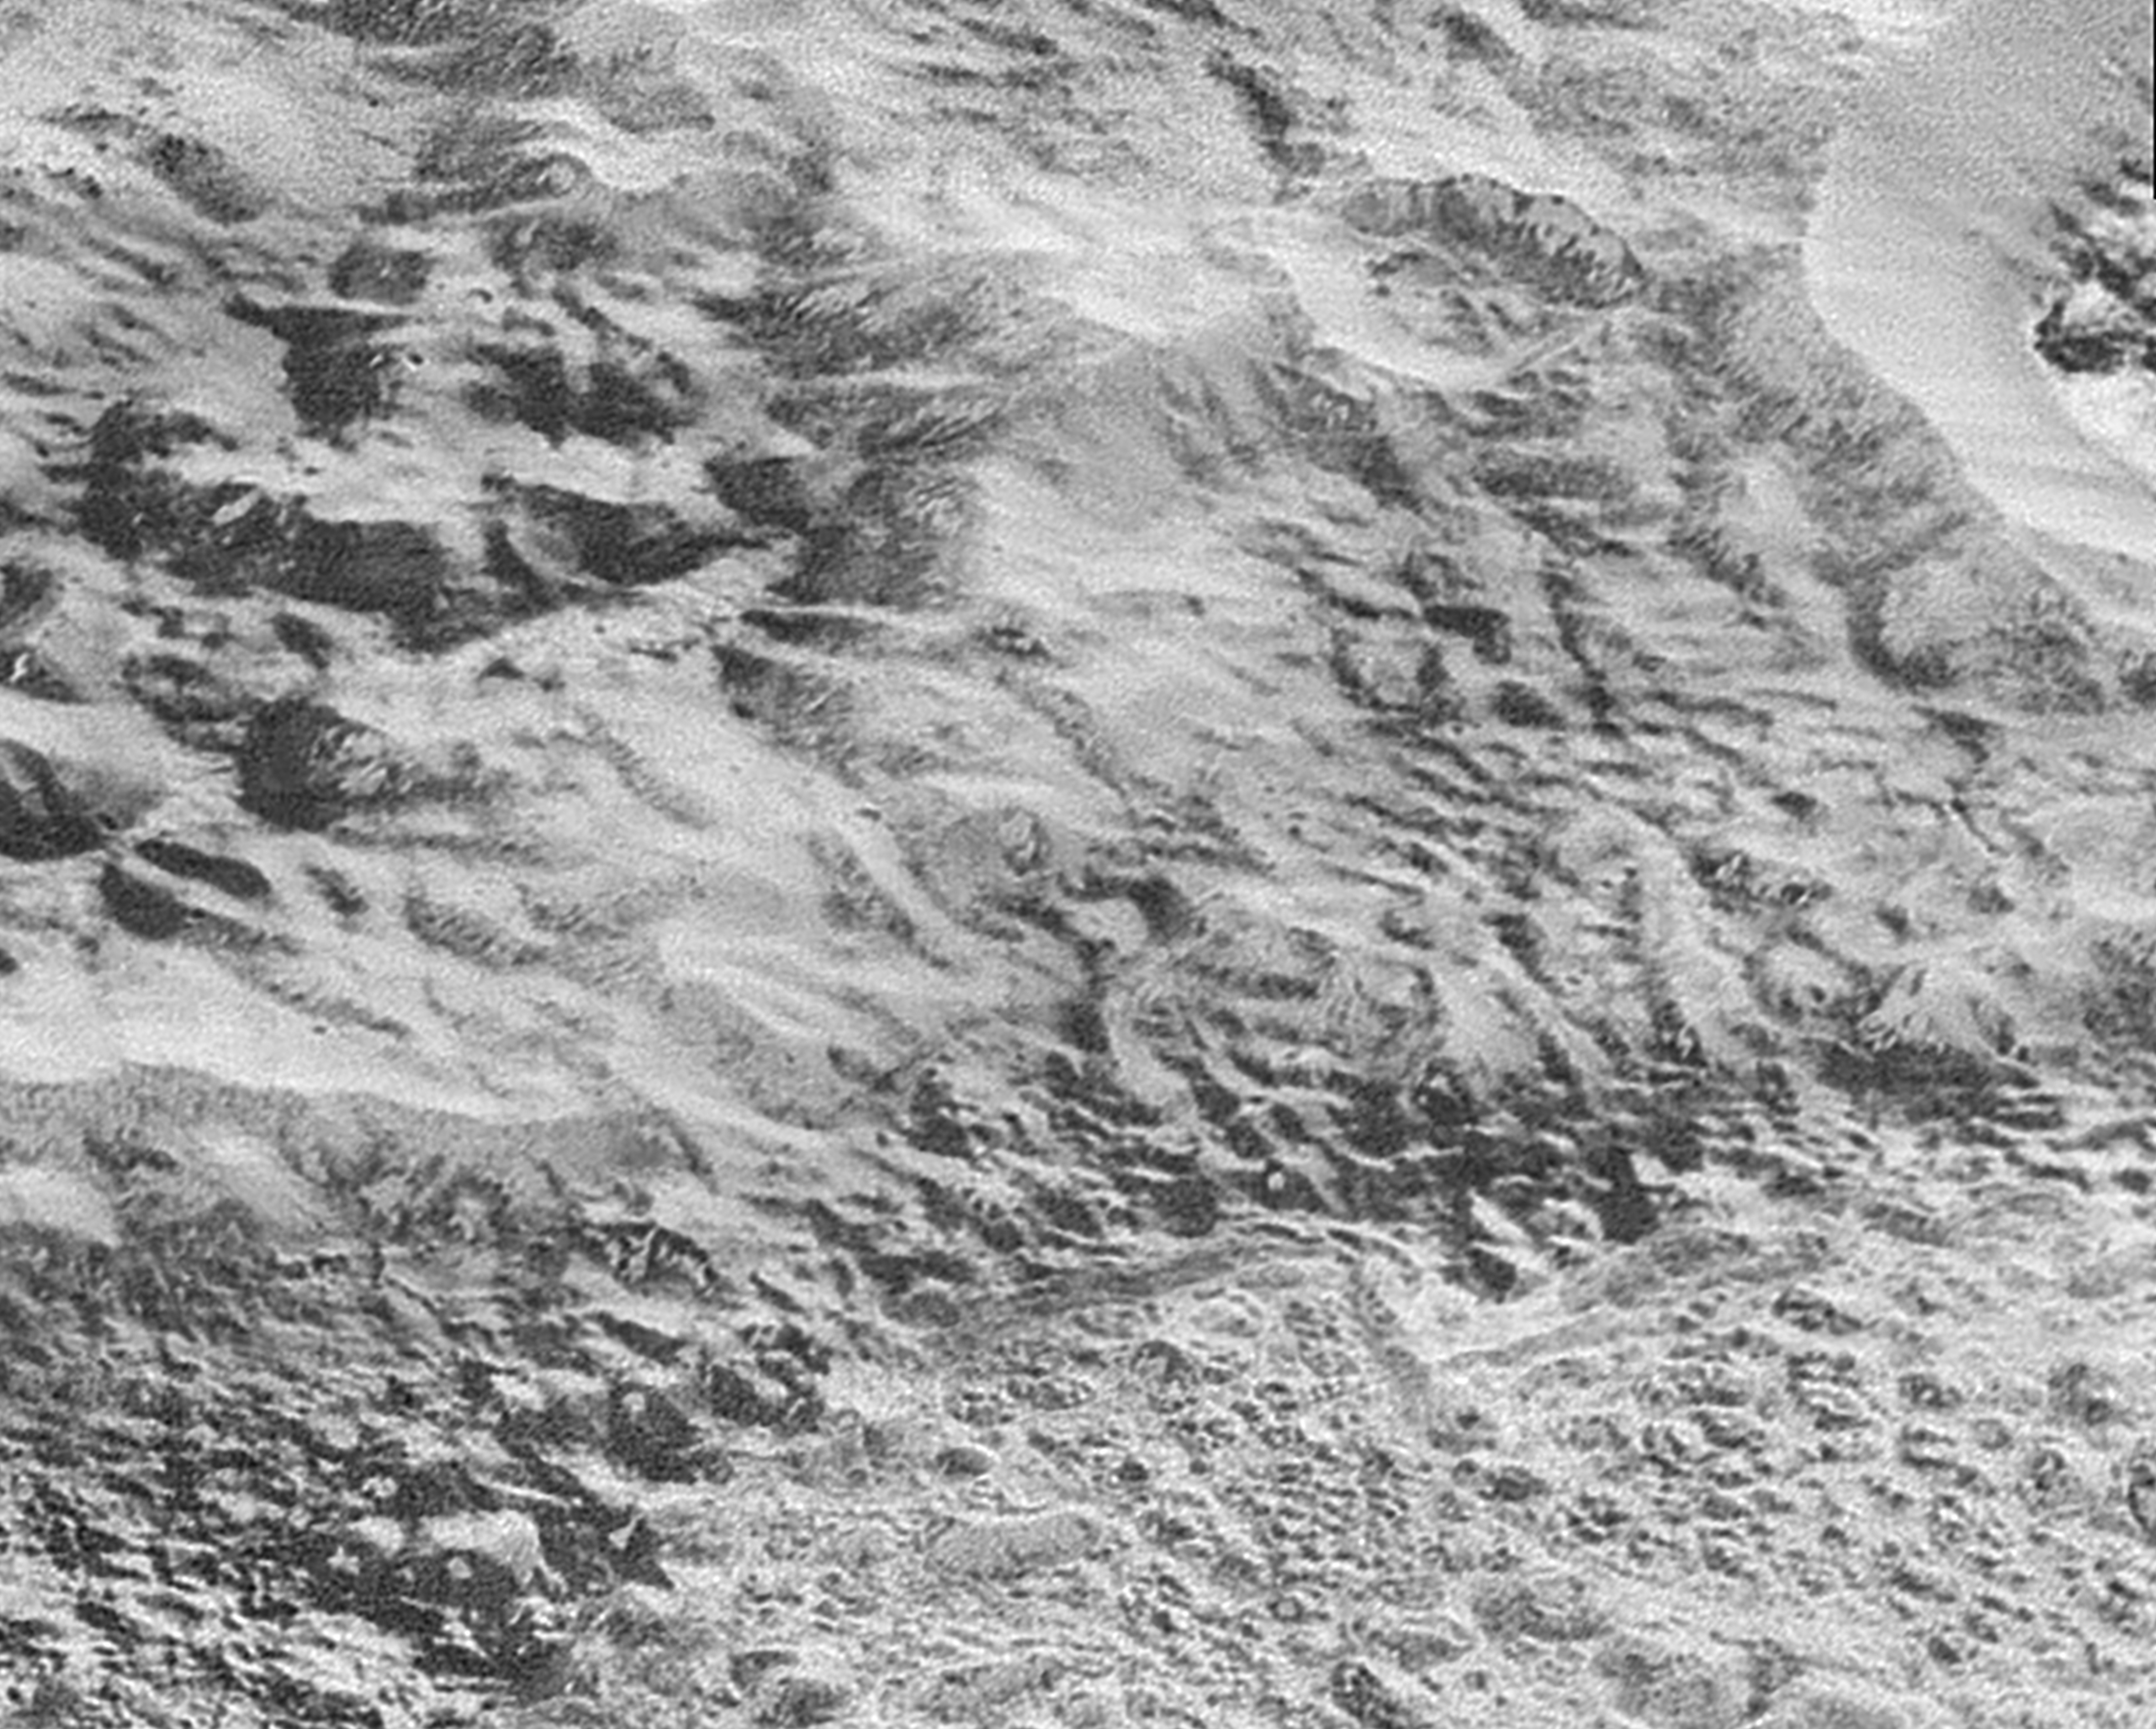 NASA Releases New Video Showing Higher-Resolution Closeup Of Pluto